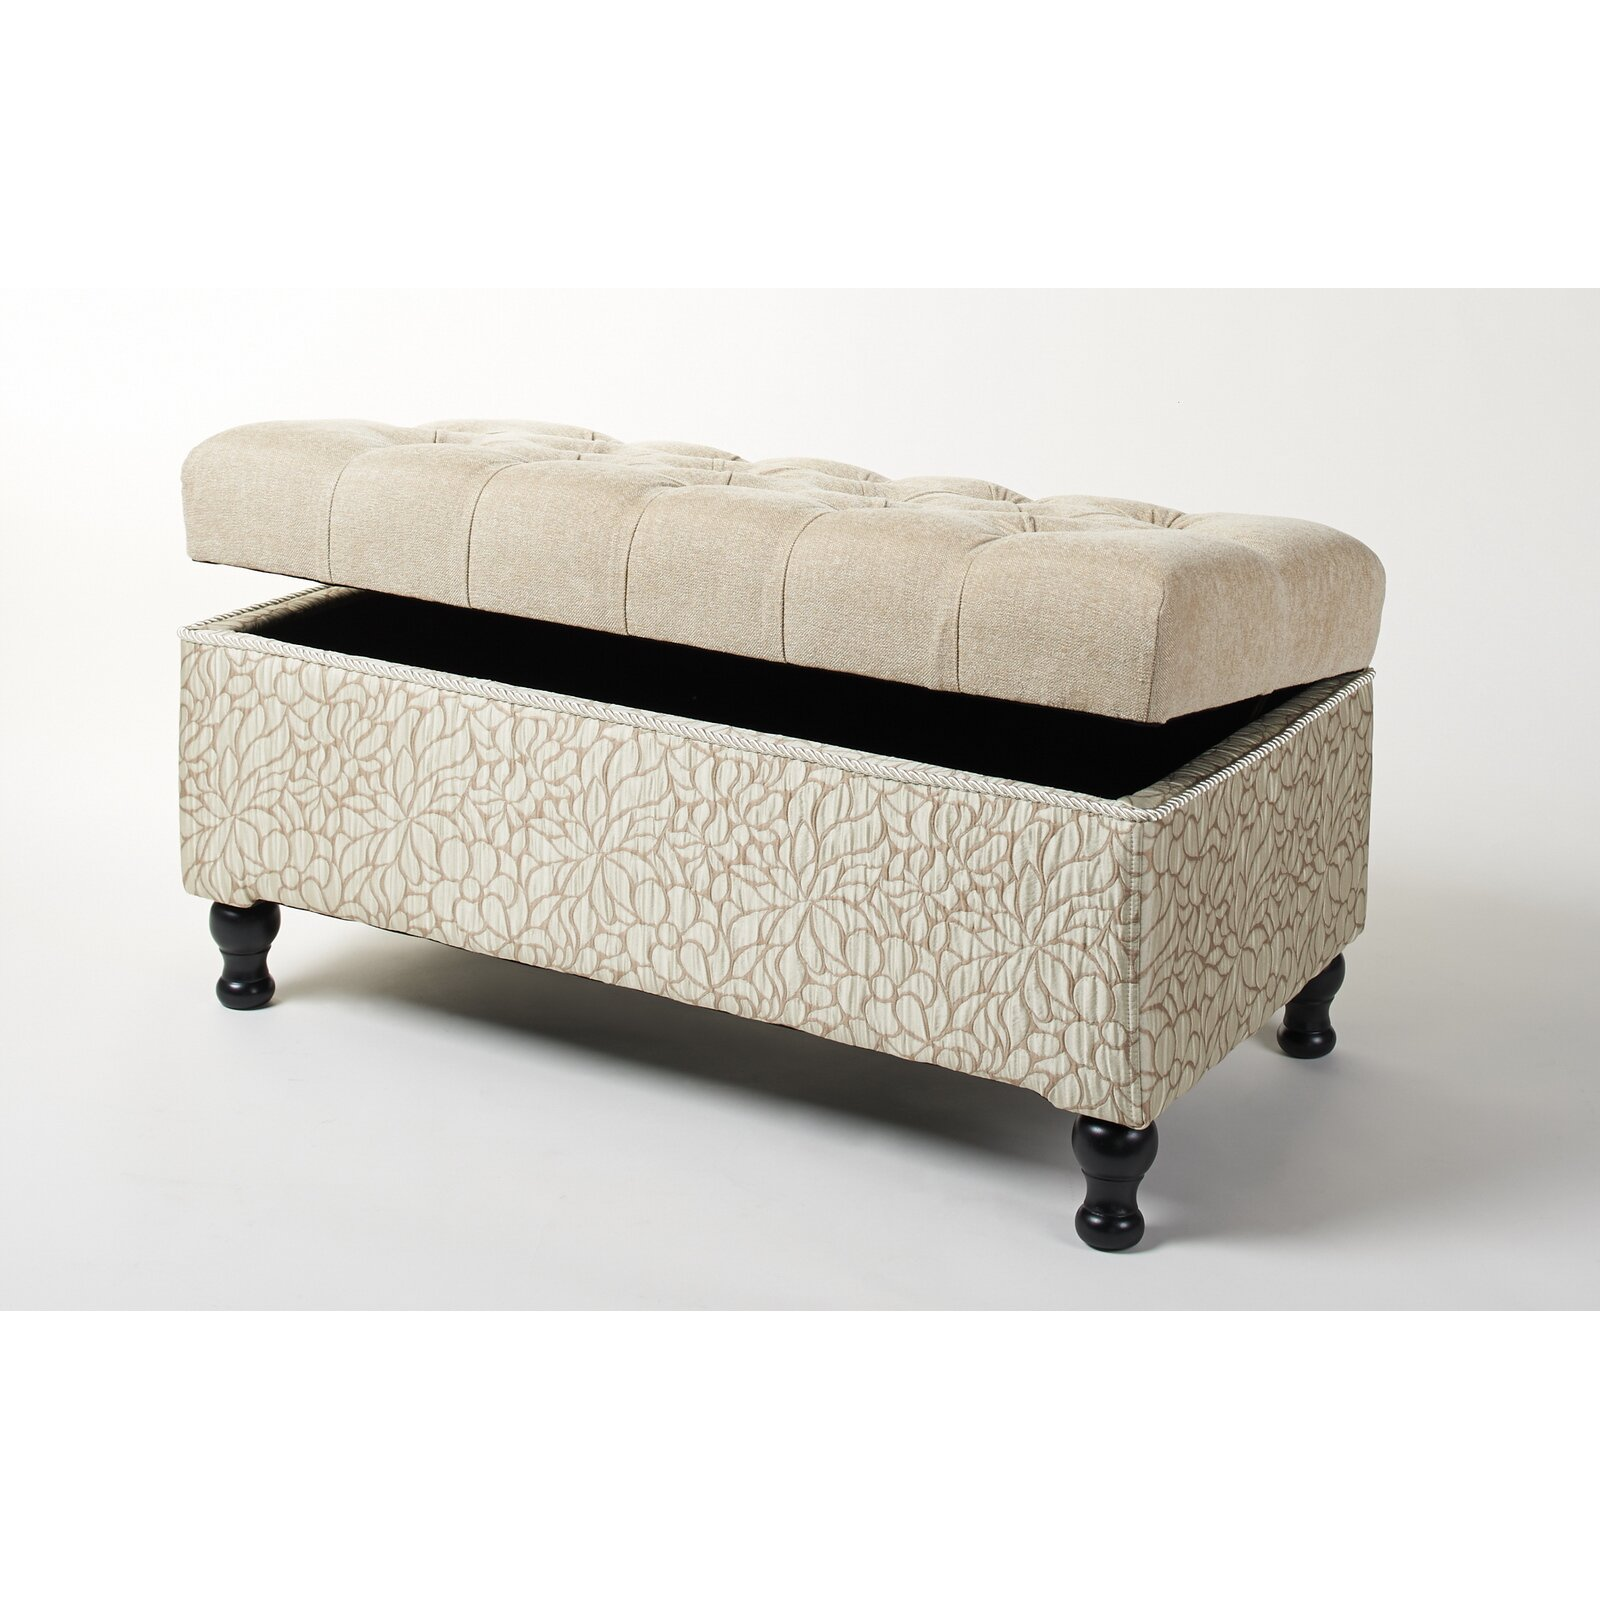 ... Taylor Naomi Upholstered Storage Bedroom Bench & Reviews  Wayfair